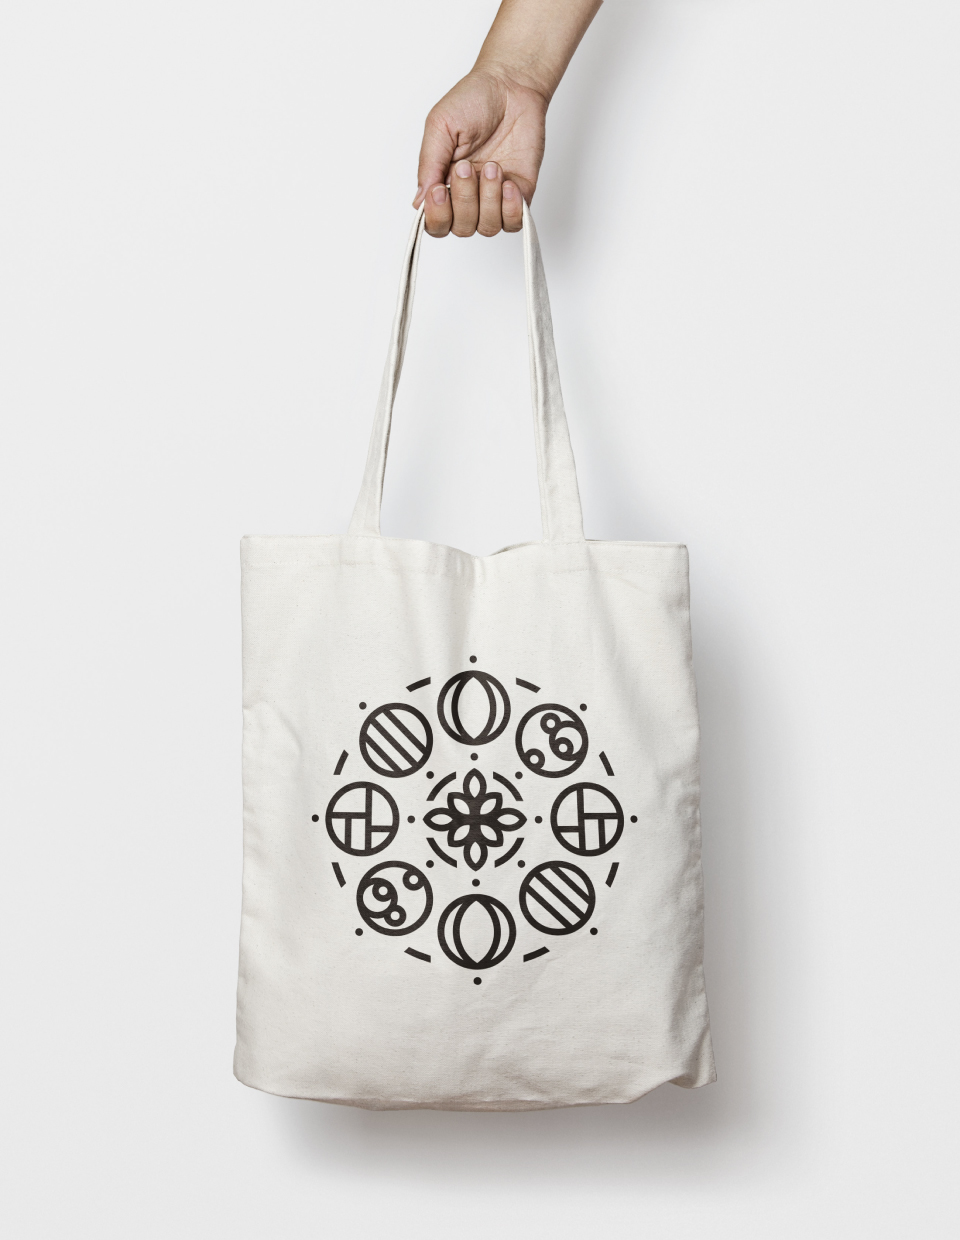 Logo application on a cotton bag